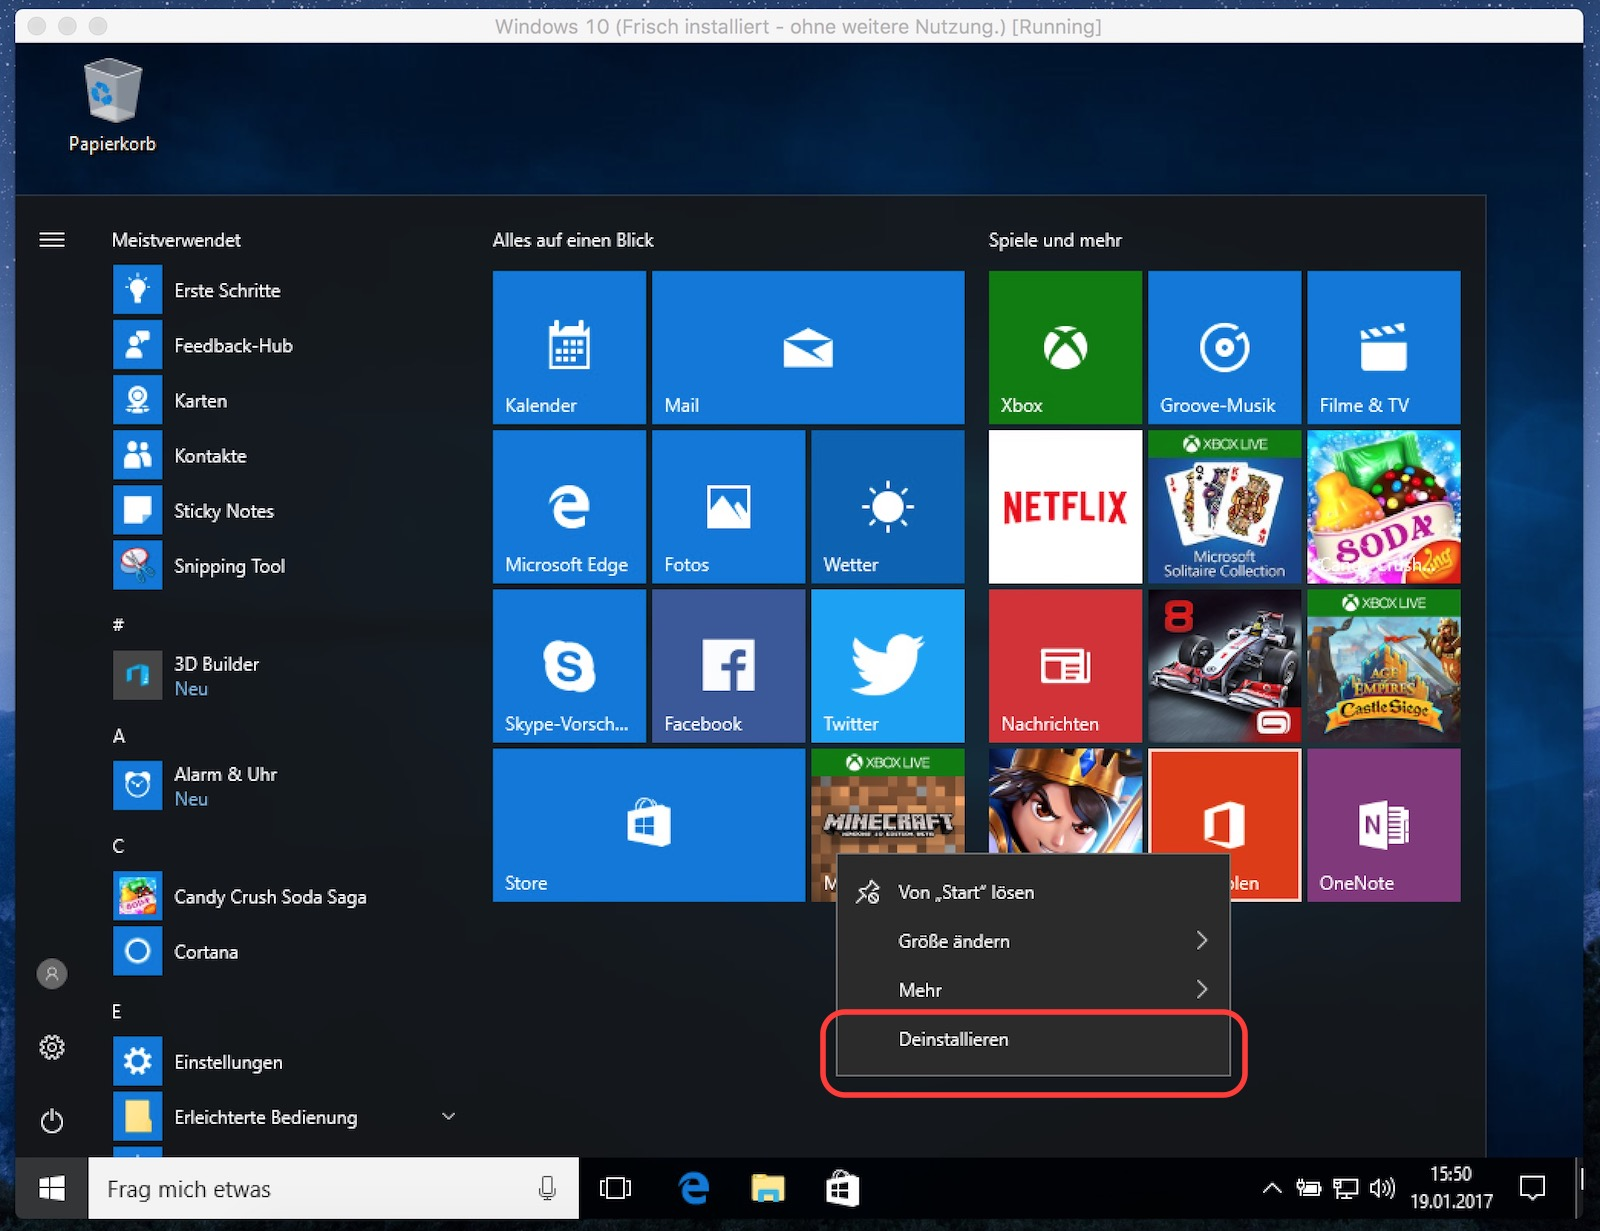 Windows 10 Office holen deinstallieren